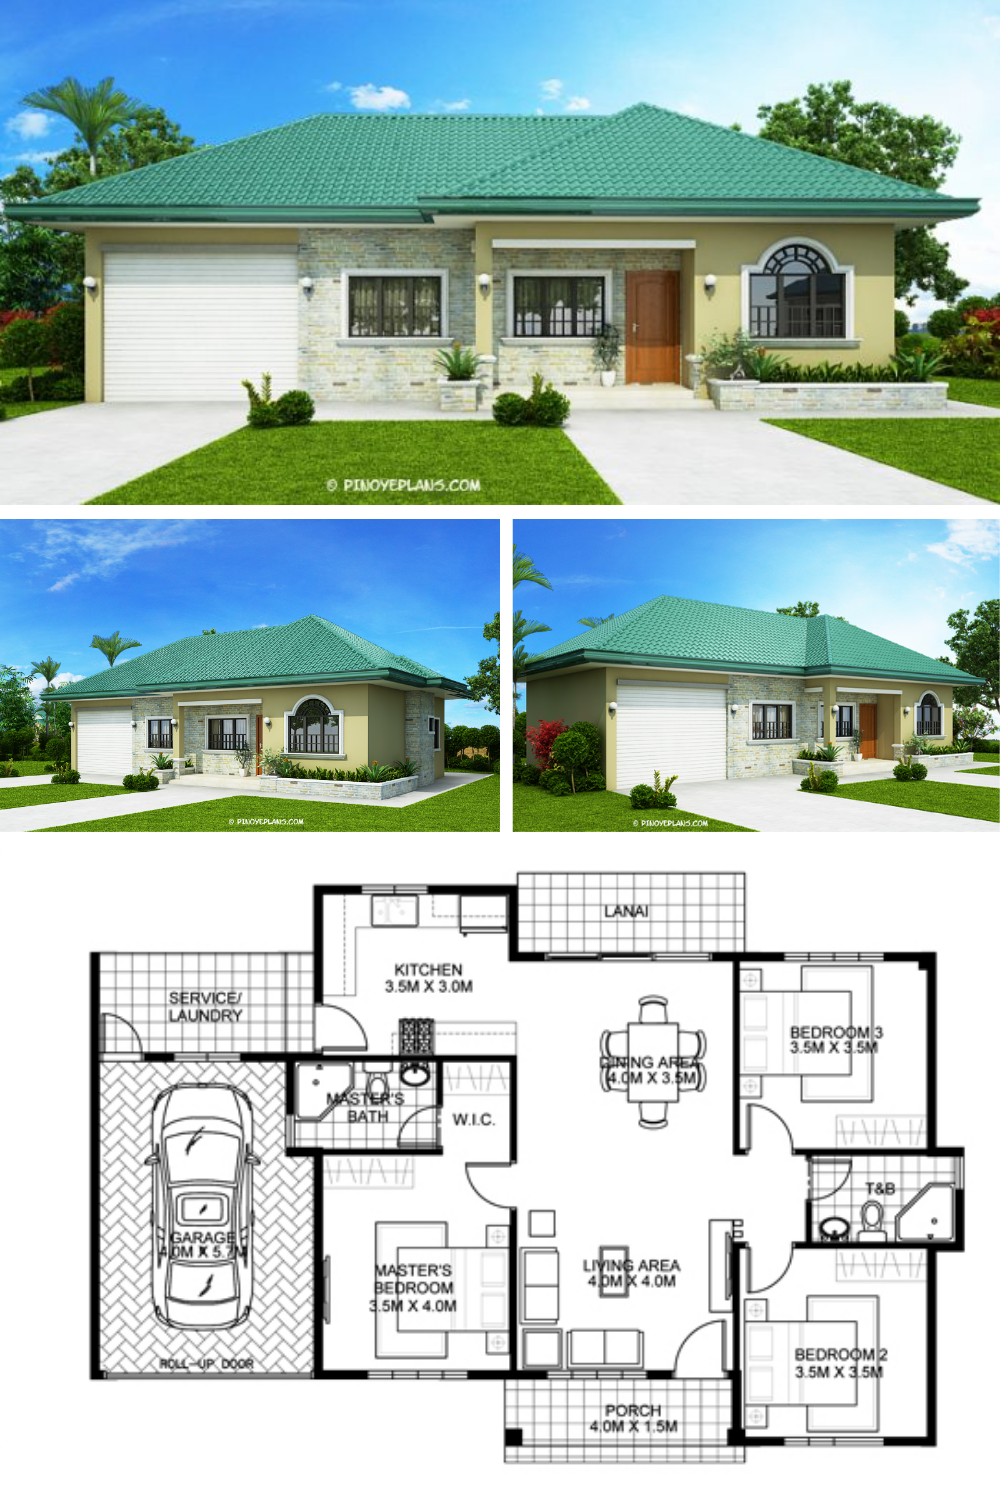 One Storey Bungalow House With 3 Bedrooms Pinoy Eplans Building Plans House House Construction Plan Small House Design Plans